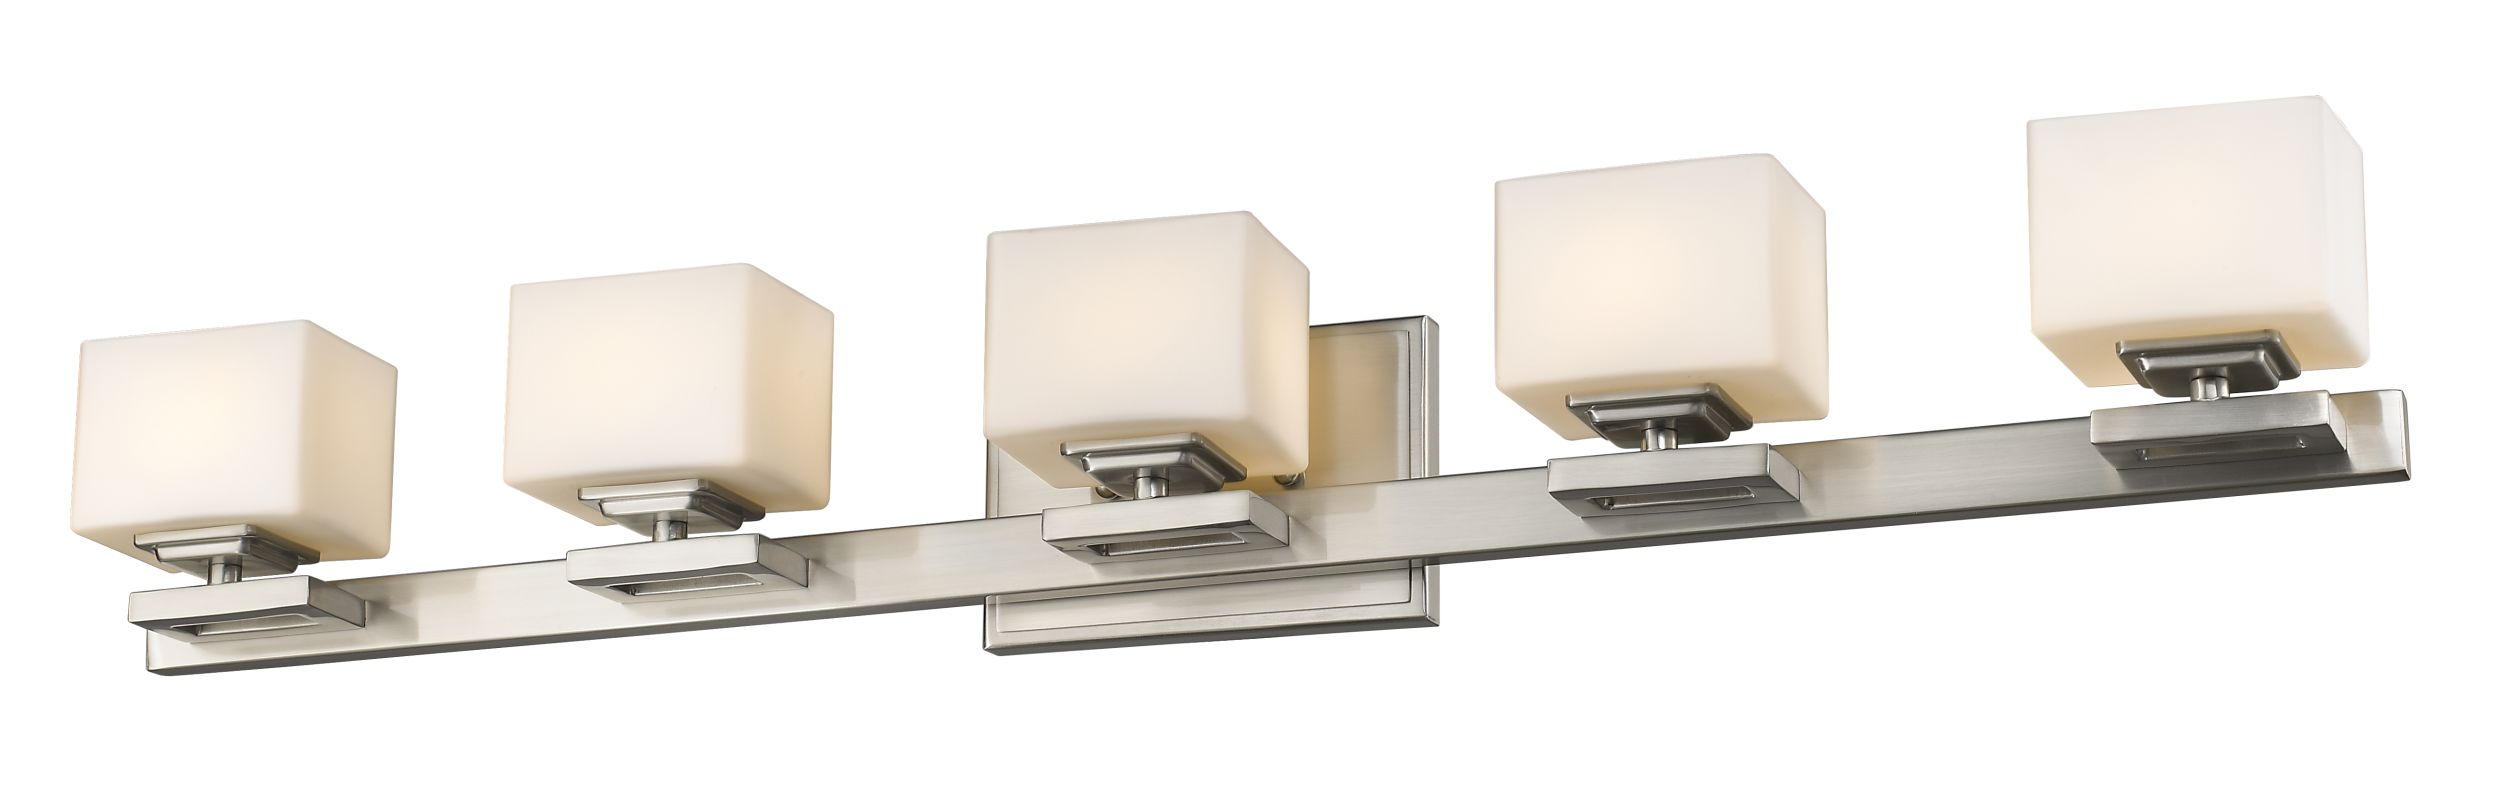 Z-Lite 1914-5V Cuvier 5 Light Bathroom Vanity Fixture Brushed Nickel